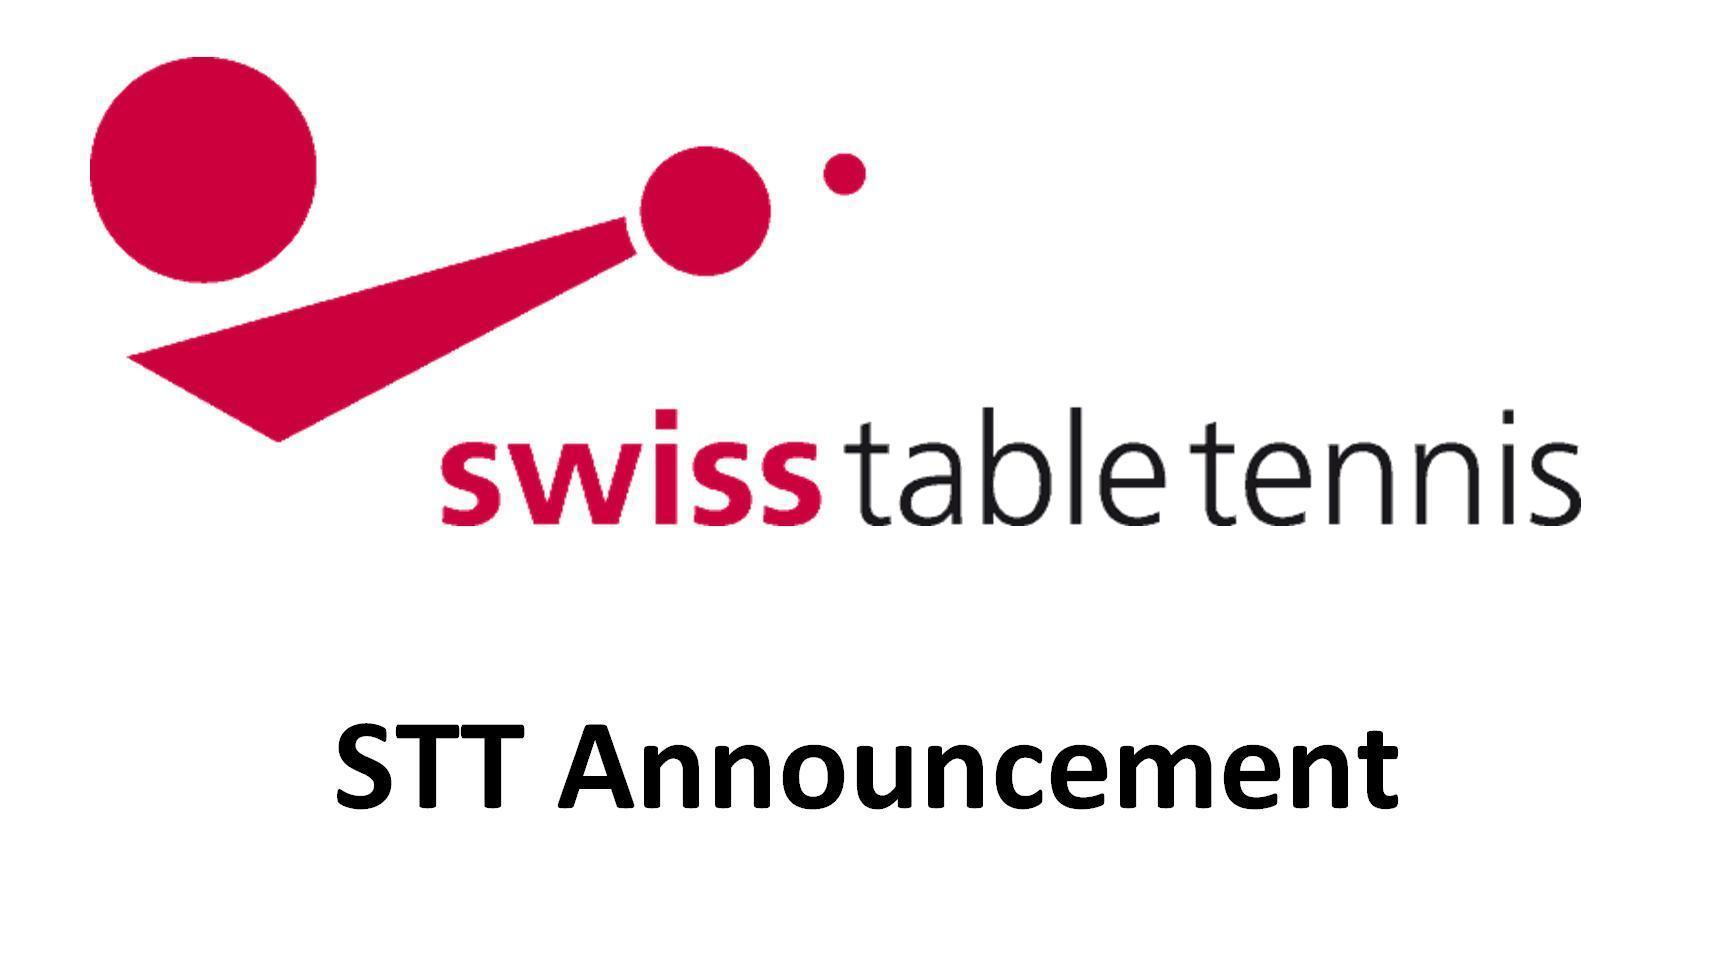 STT announcement